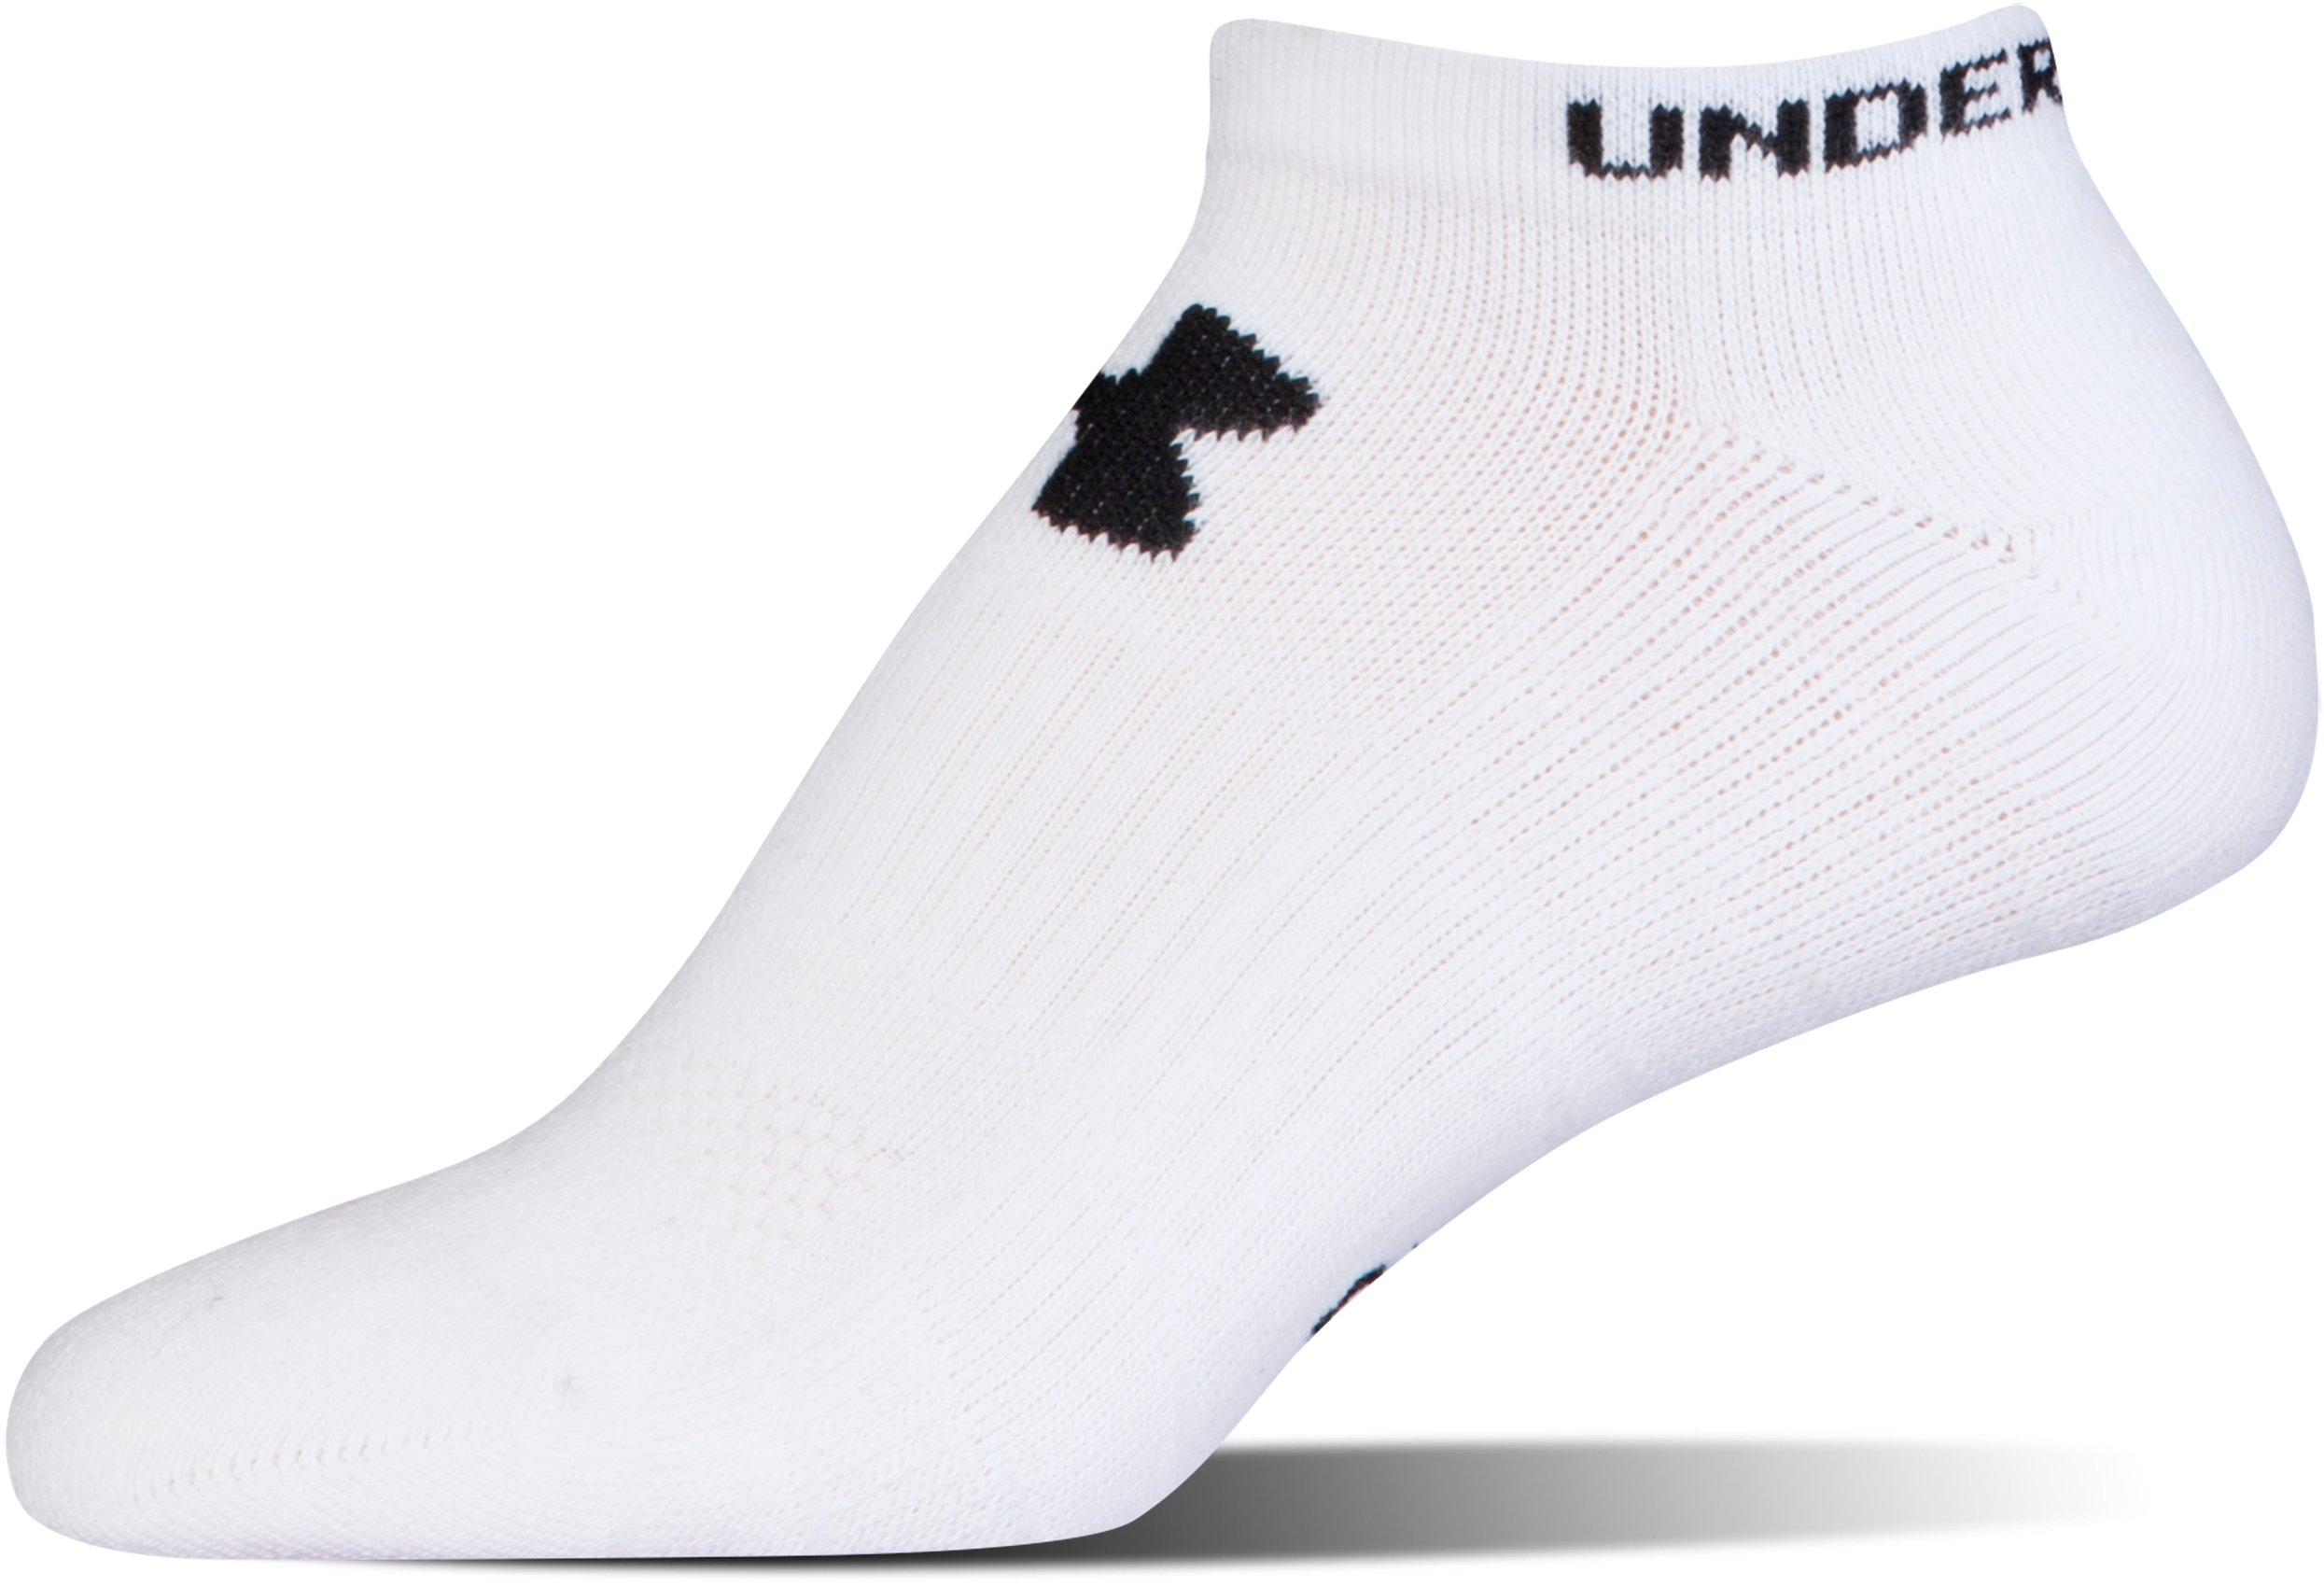 Men's UA Performance No Show Socks – 3-Pack, White, undefined